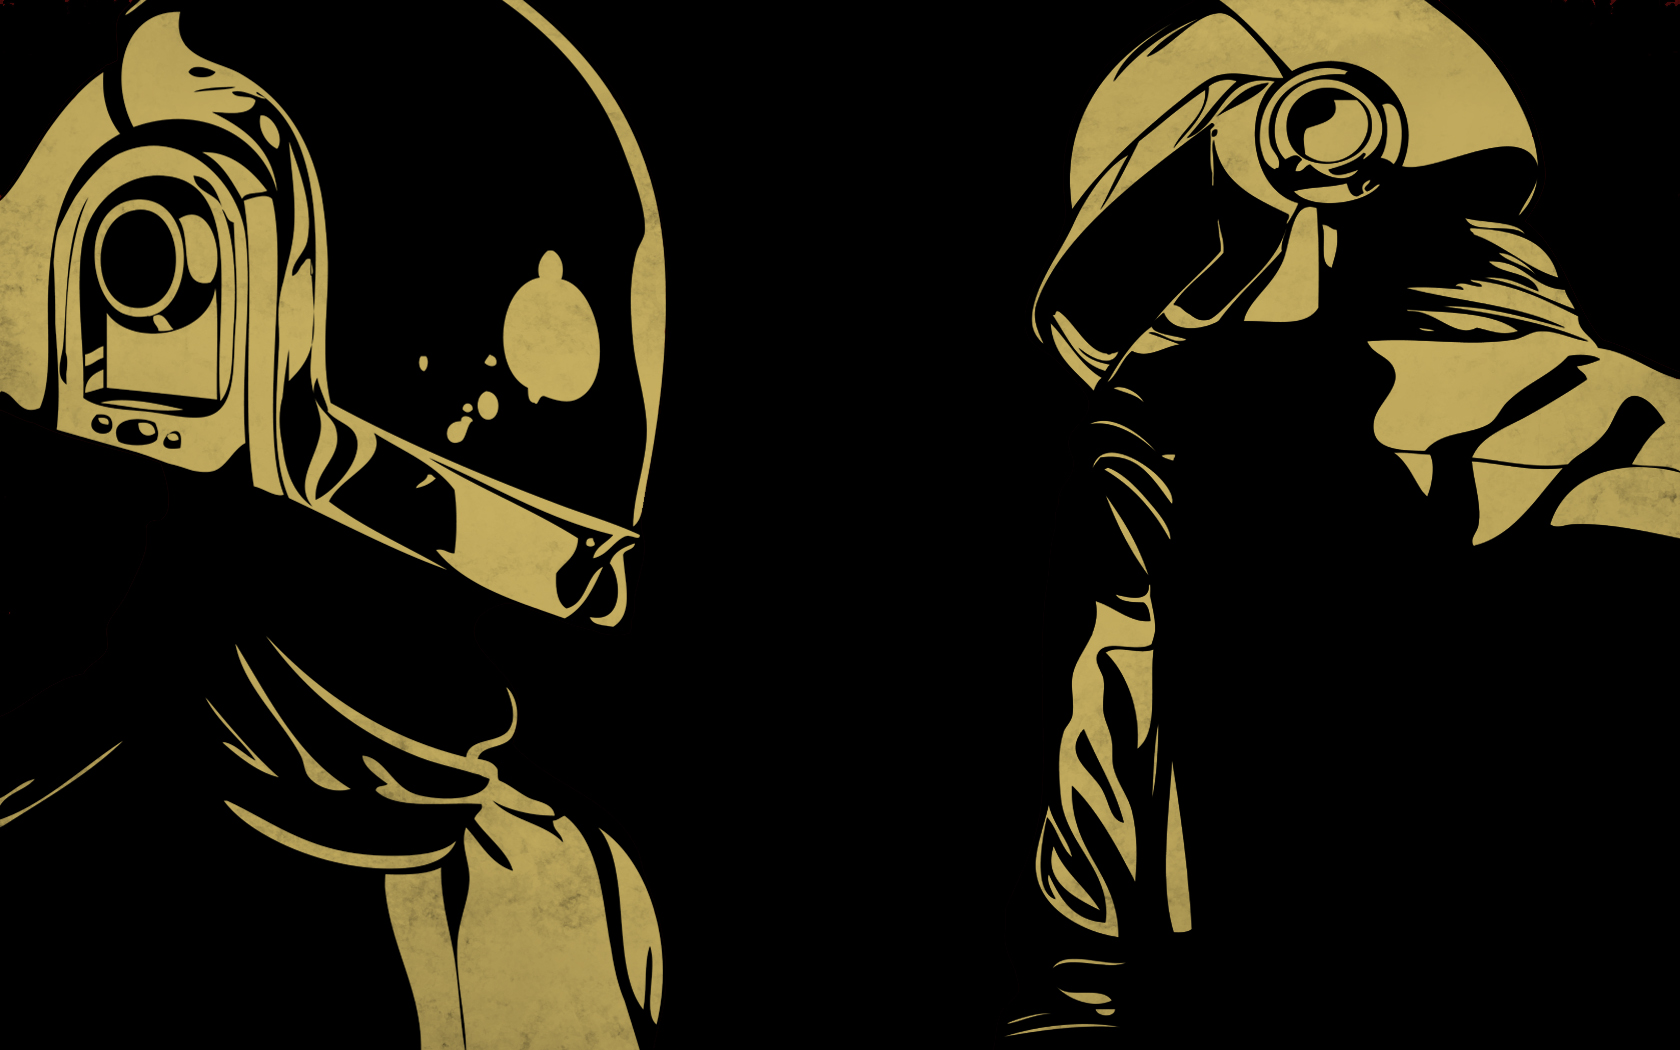 Daft Punk Music Wallpapers 2